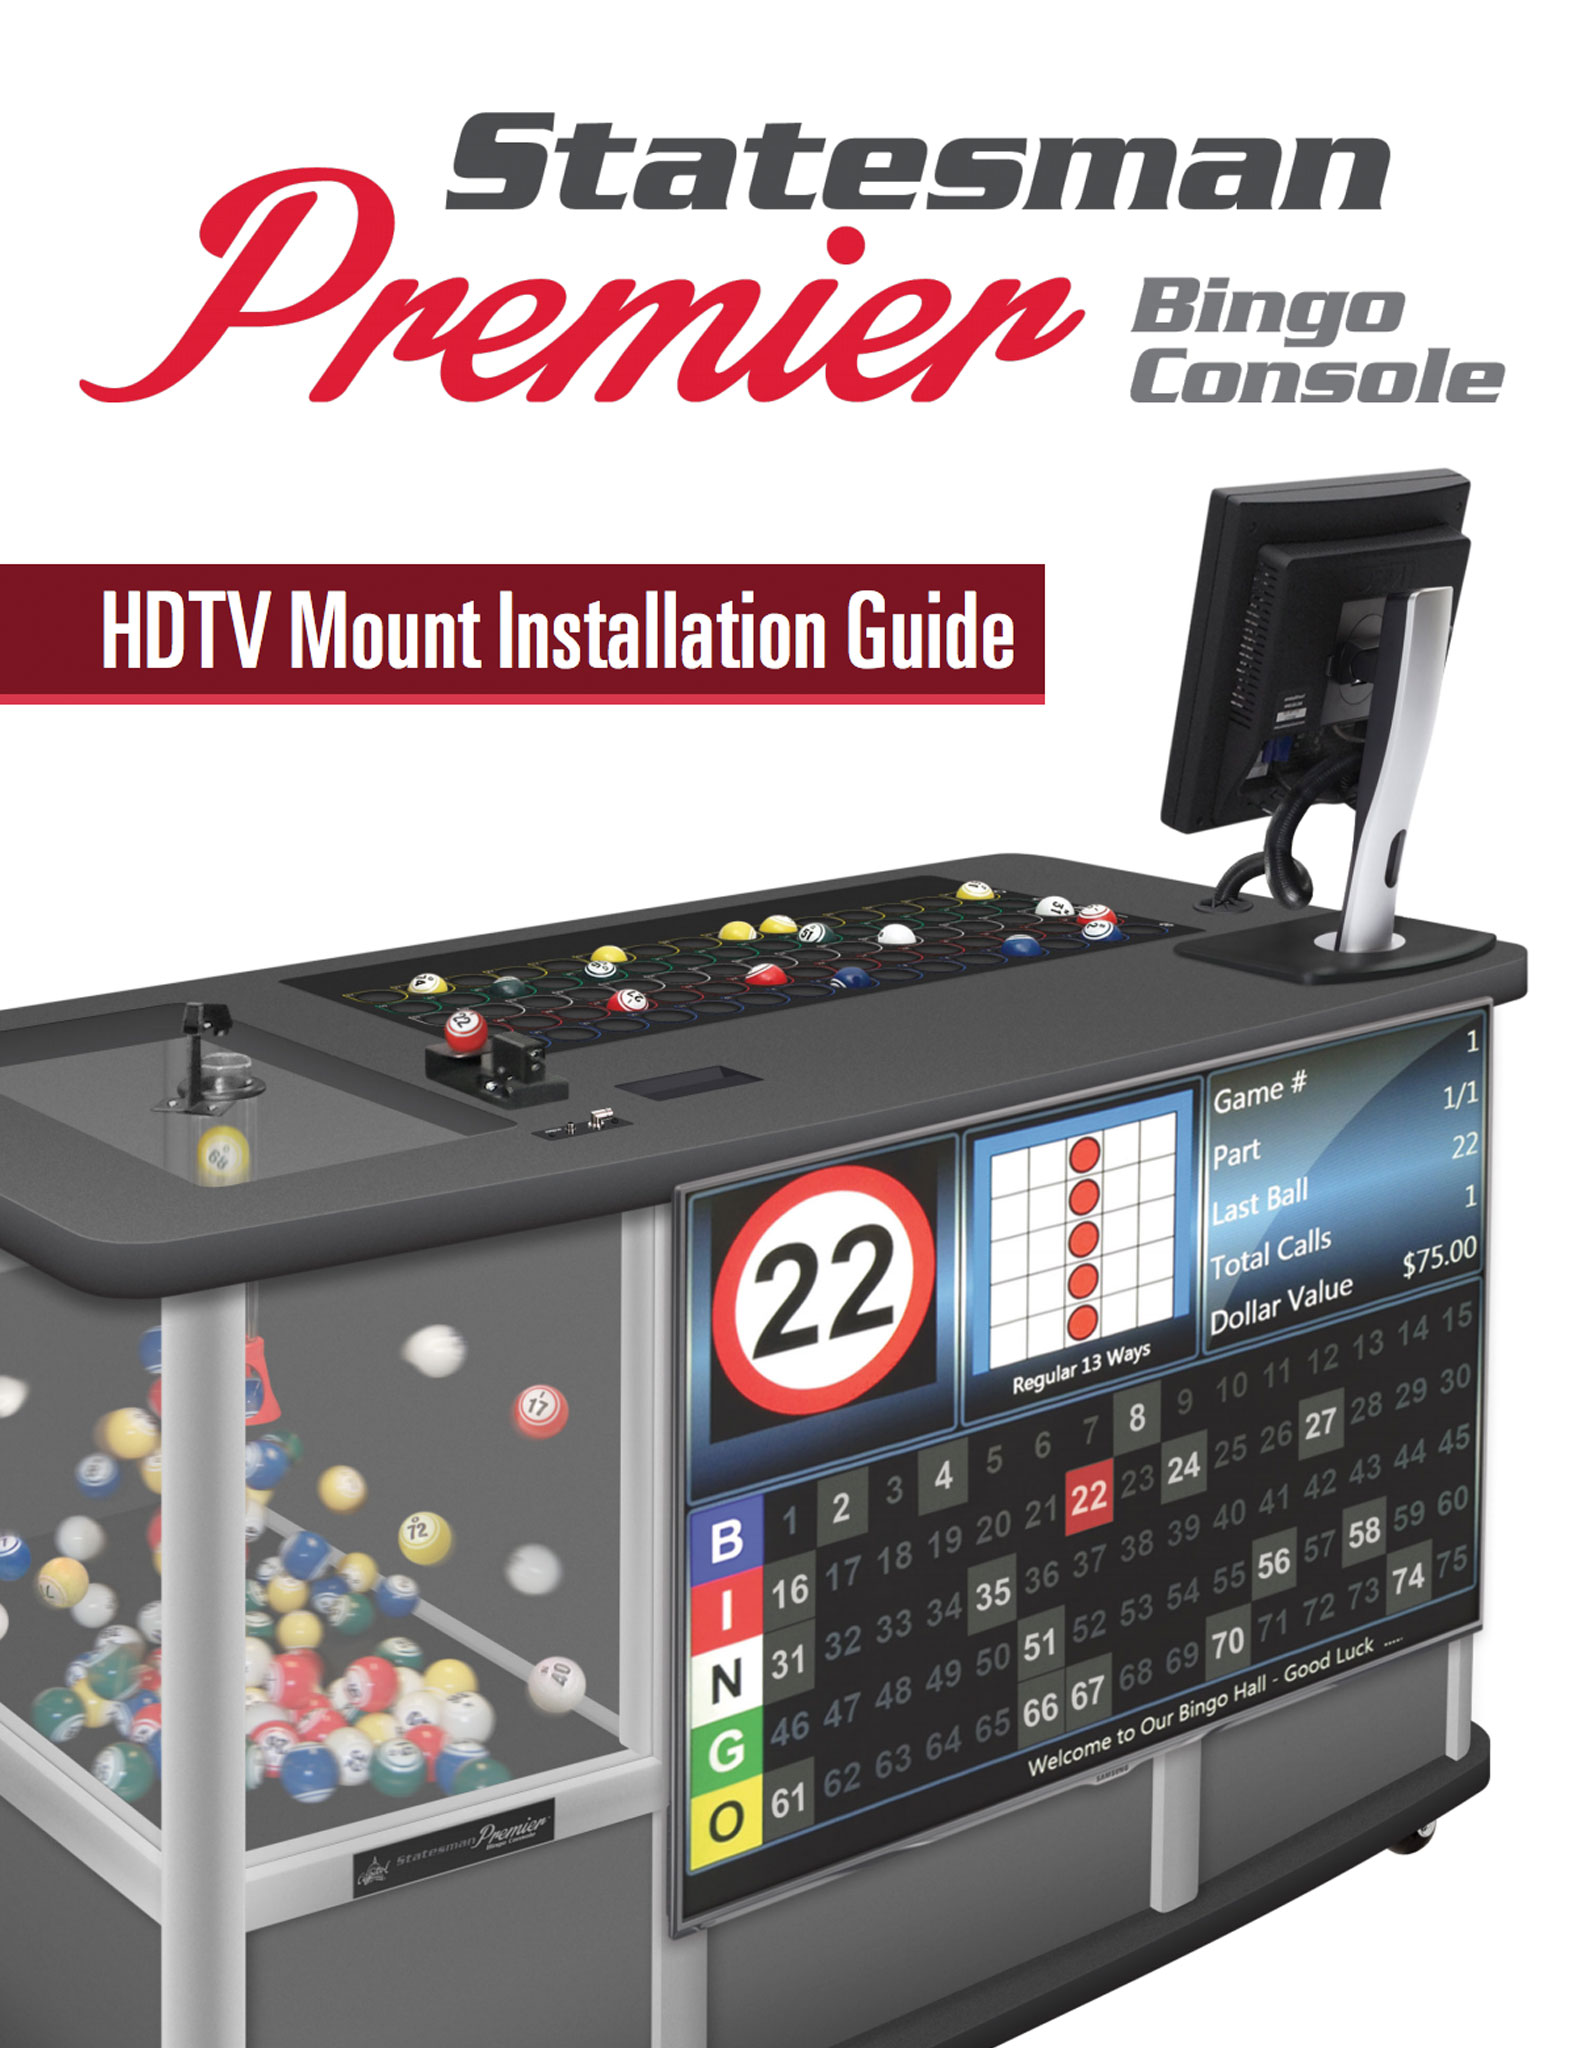 Statesman Premier HDTV Mount Install Guide Equipment Manuals/Quick Start Guides